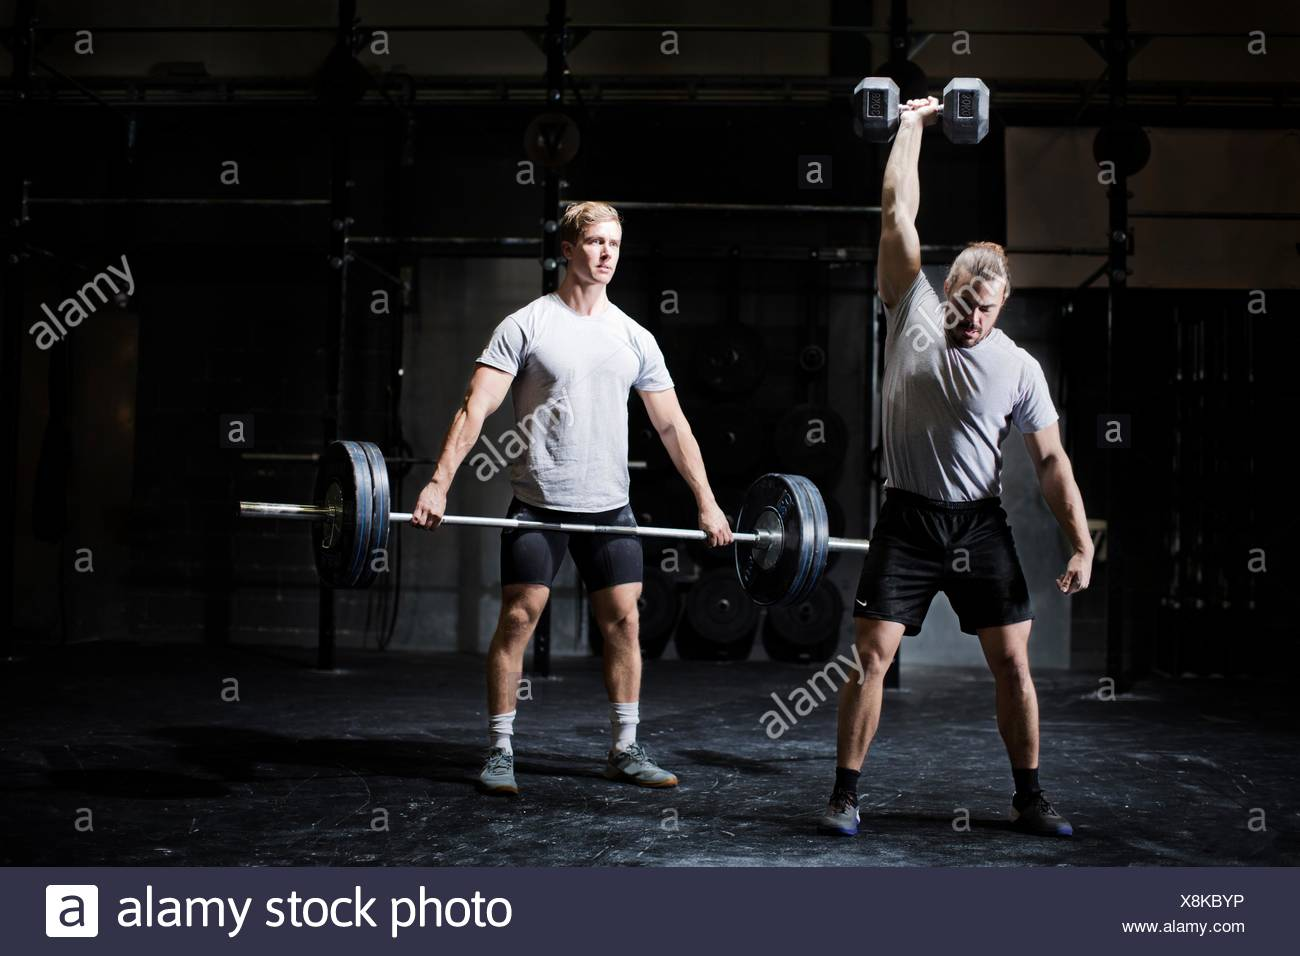 Two young men weightlifting with dumbbell and barbell in dark gym - Stock Image